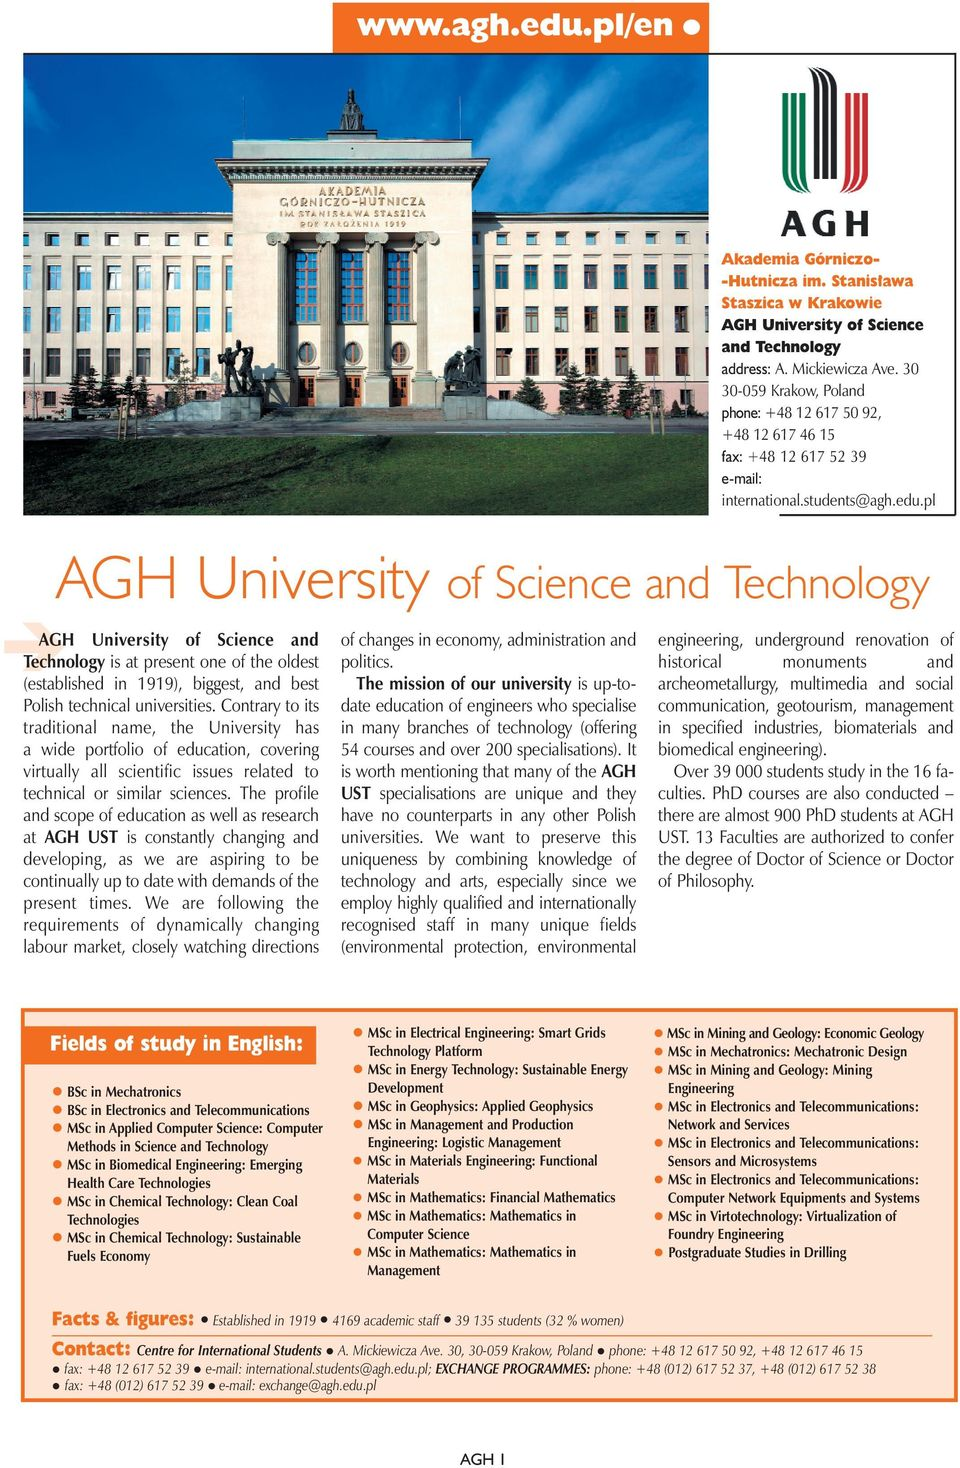 pl AGH University of Science and Technology is at present one of the oldest (established in 1919), biggest, and best Polish technical universities.